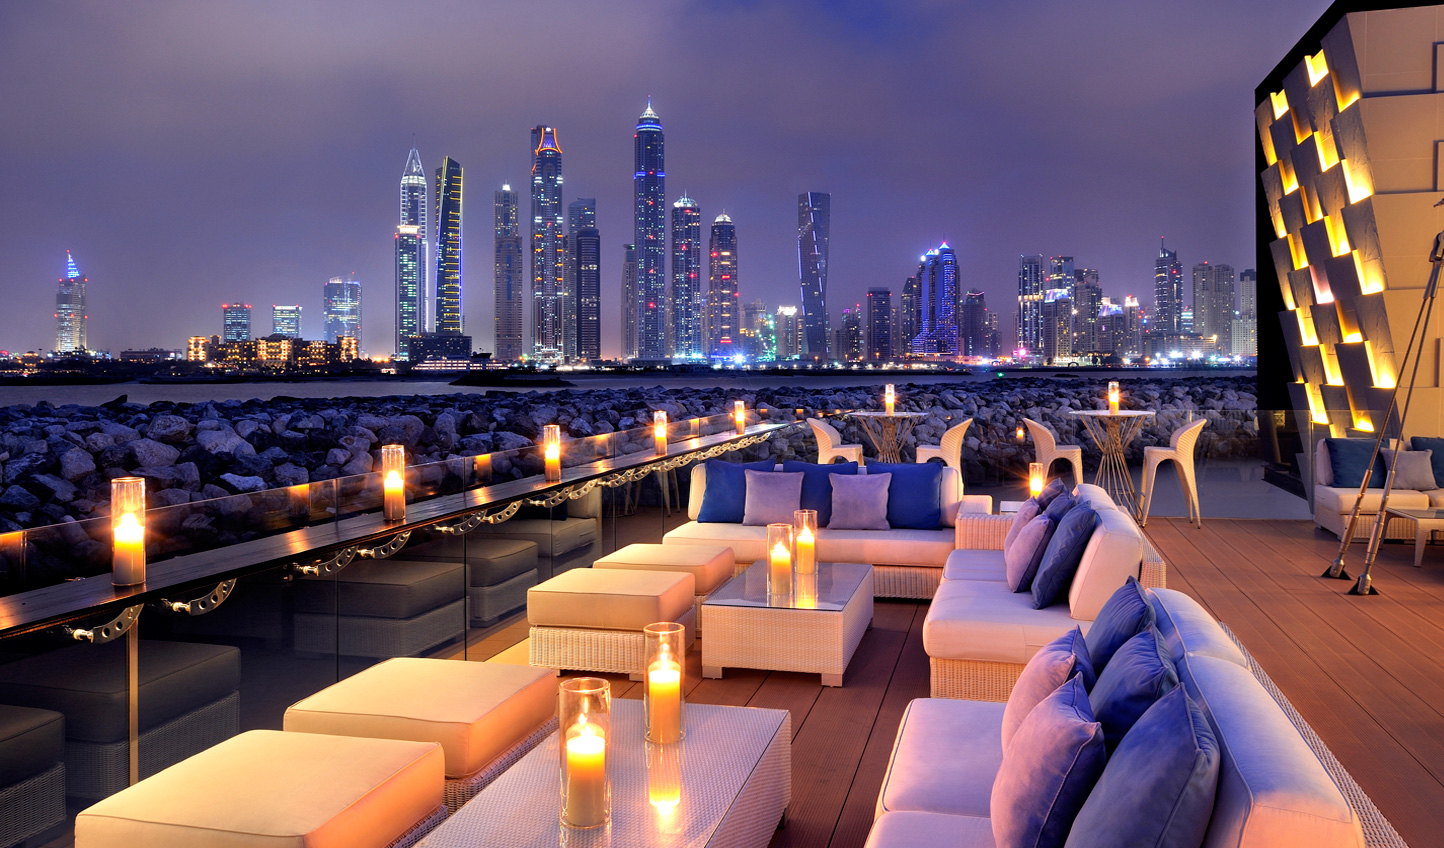 Enjoy an aperitif at the 101 Dining Lounge and Bar which boasts unparalleled panoramic views of the New Dubai skyline